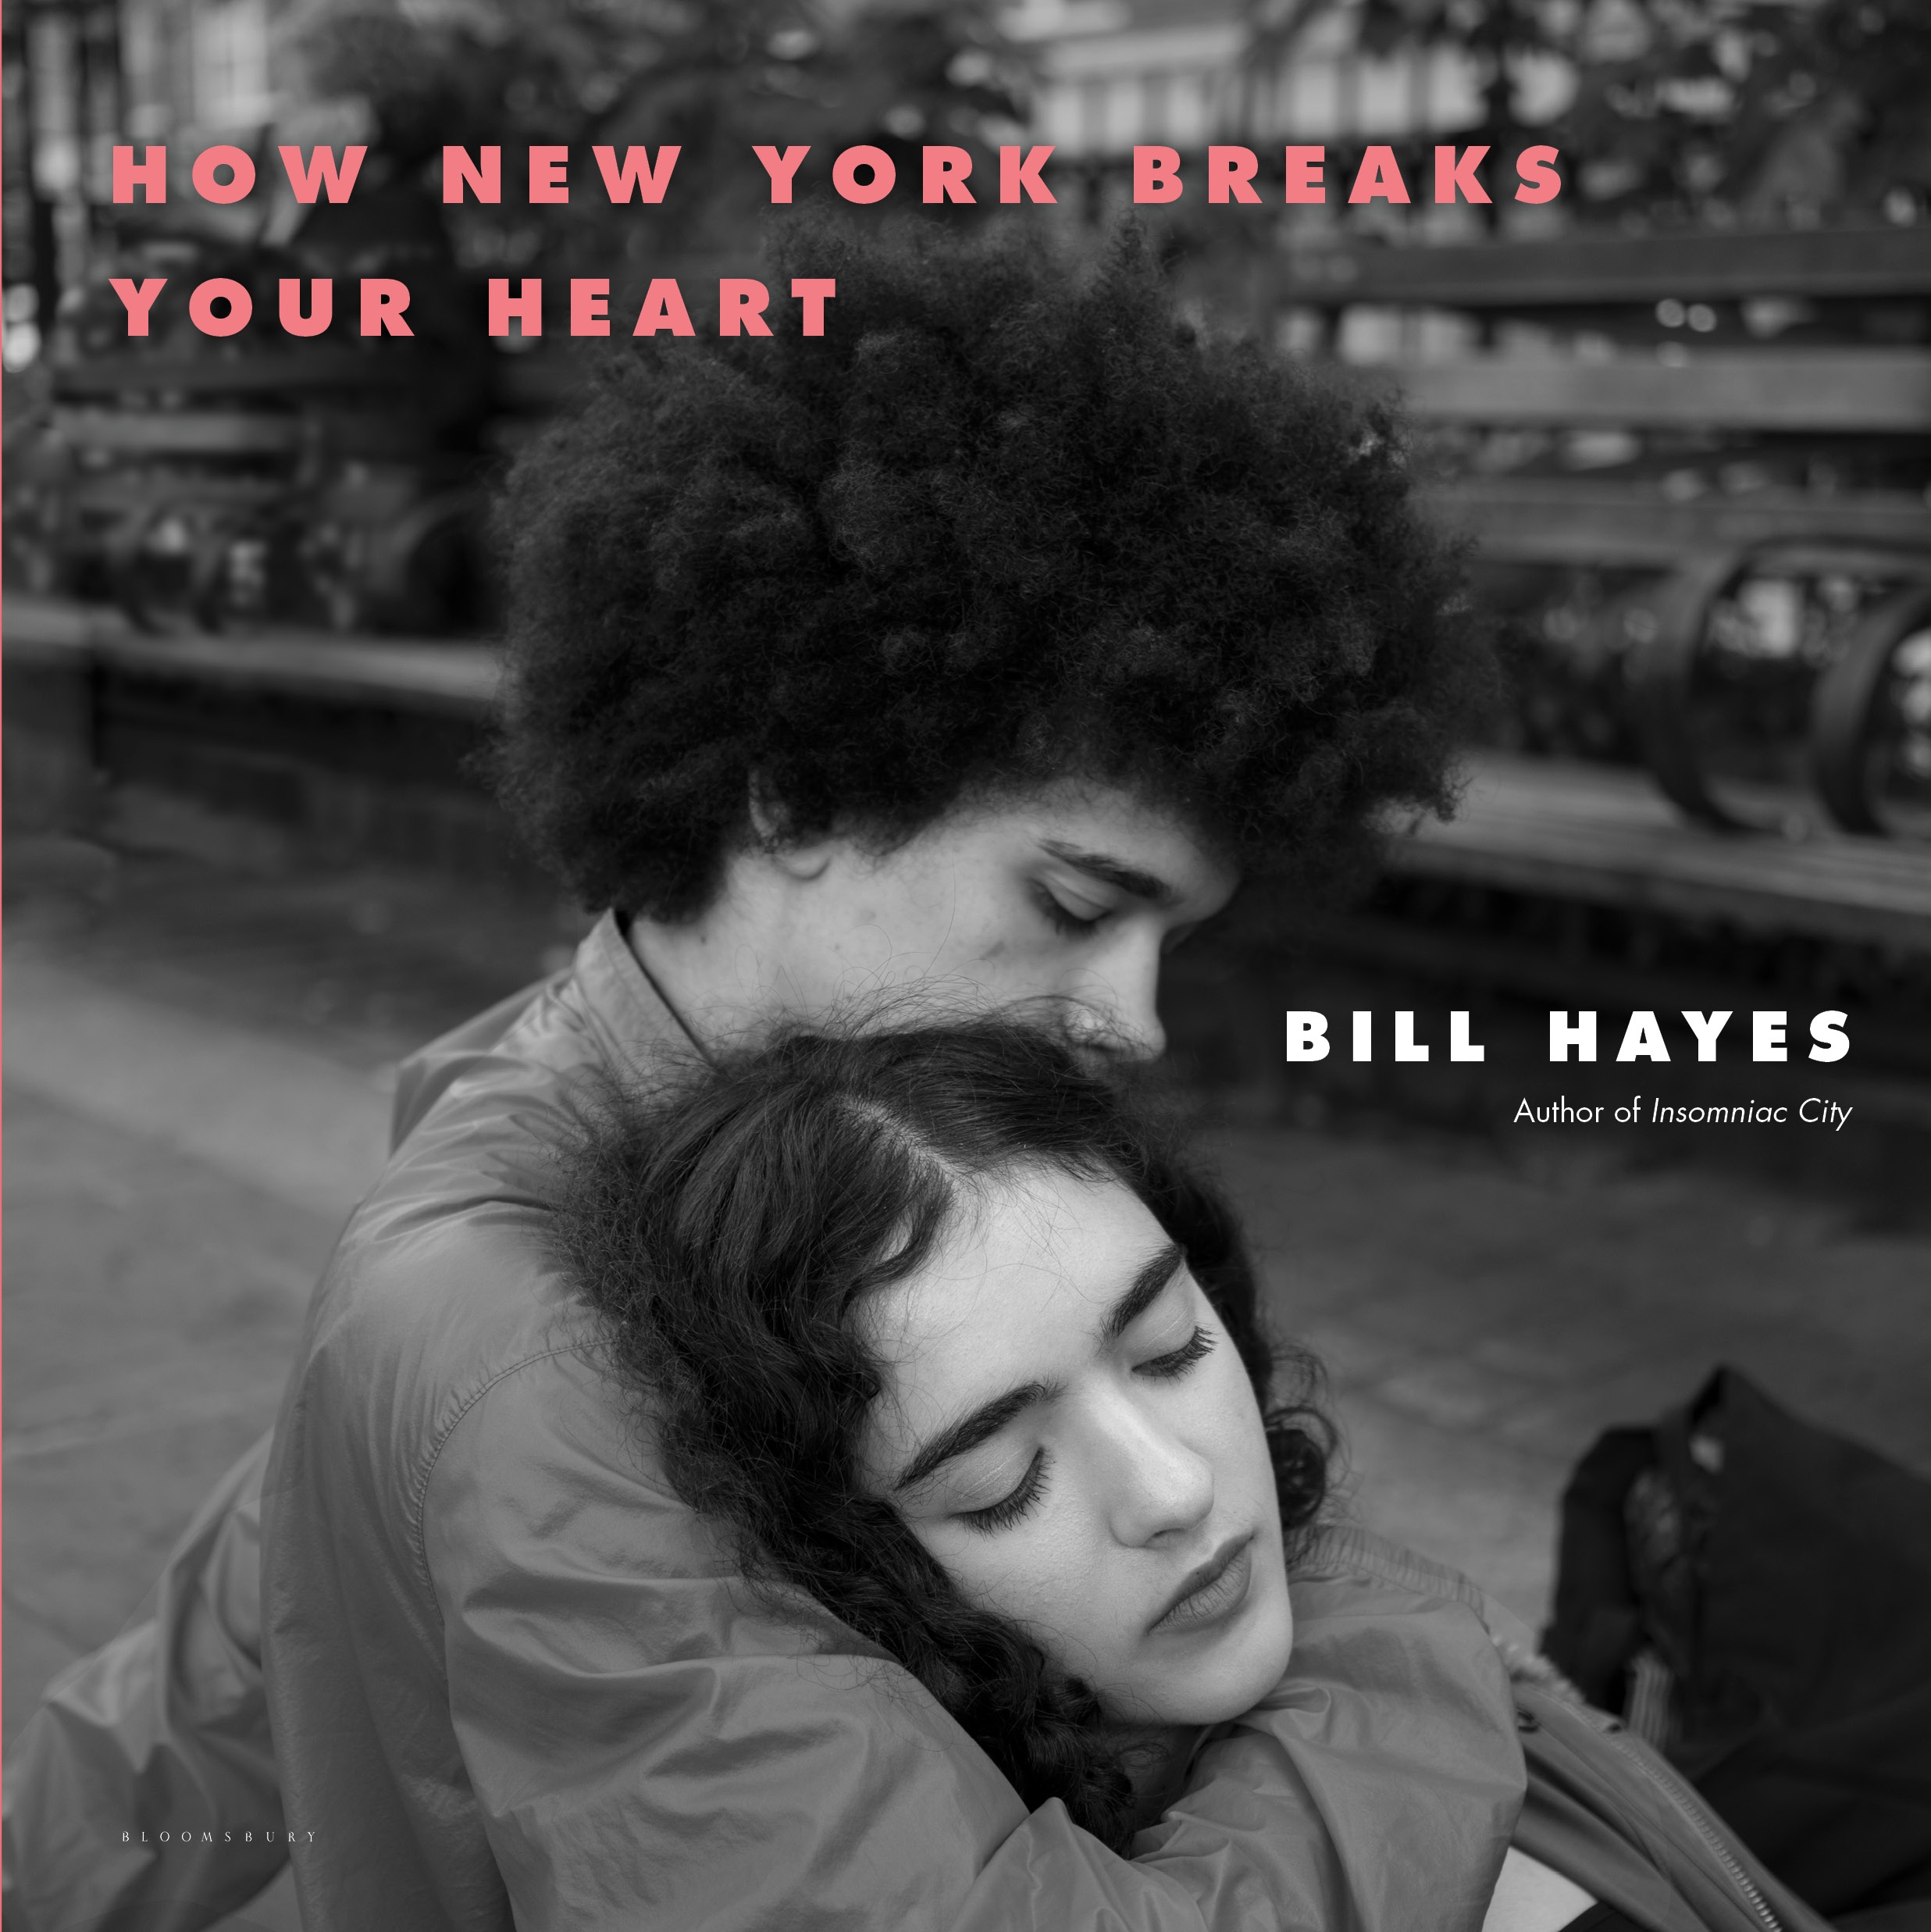 Book Launch: How New York Breaks Your Heart by Bill Hayes — in conversation w/ Vince Aletti